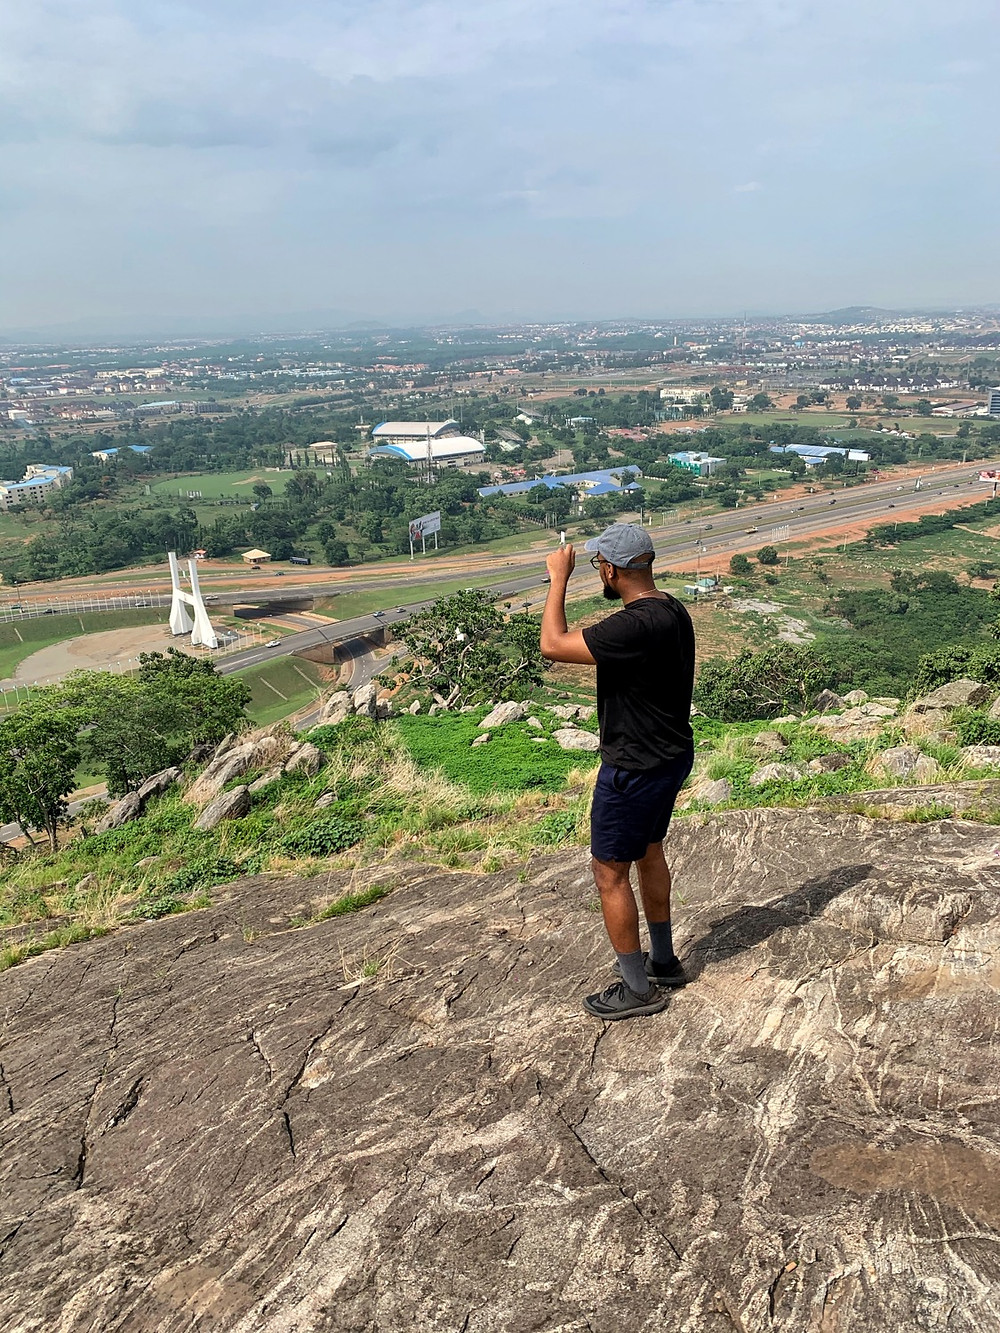 View of the Abuja City Gate